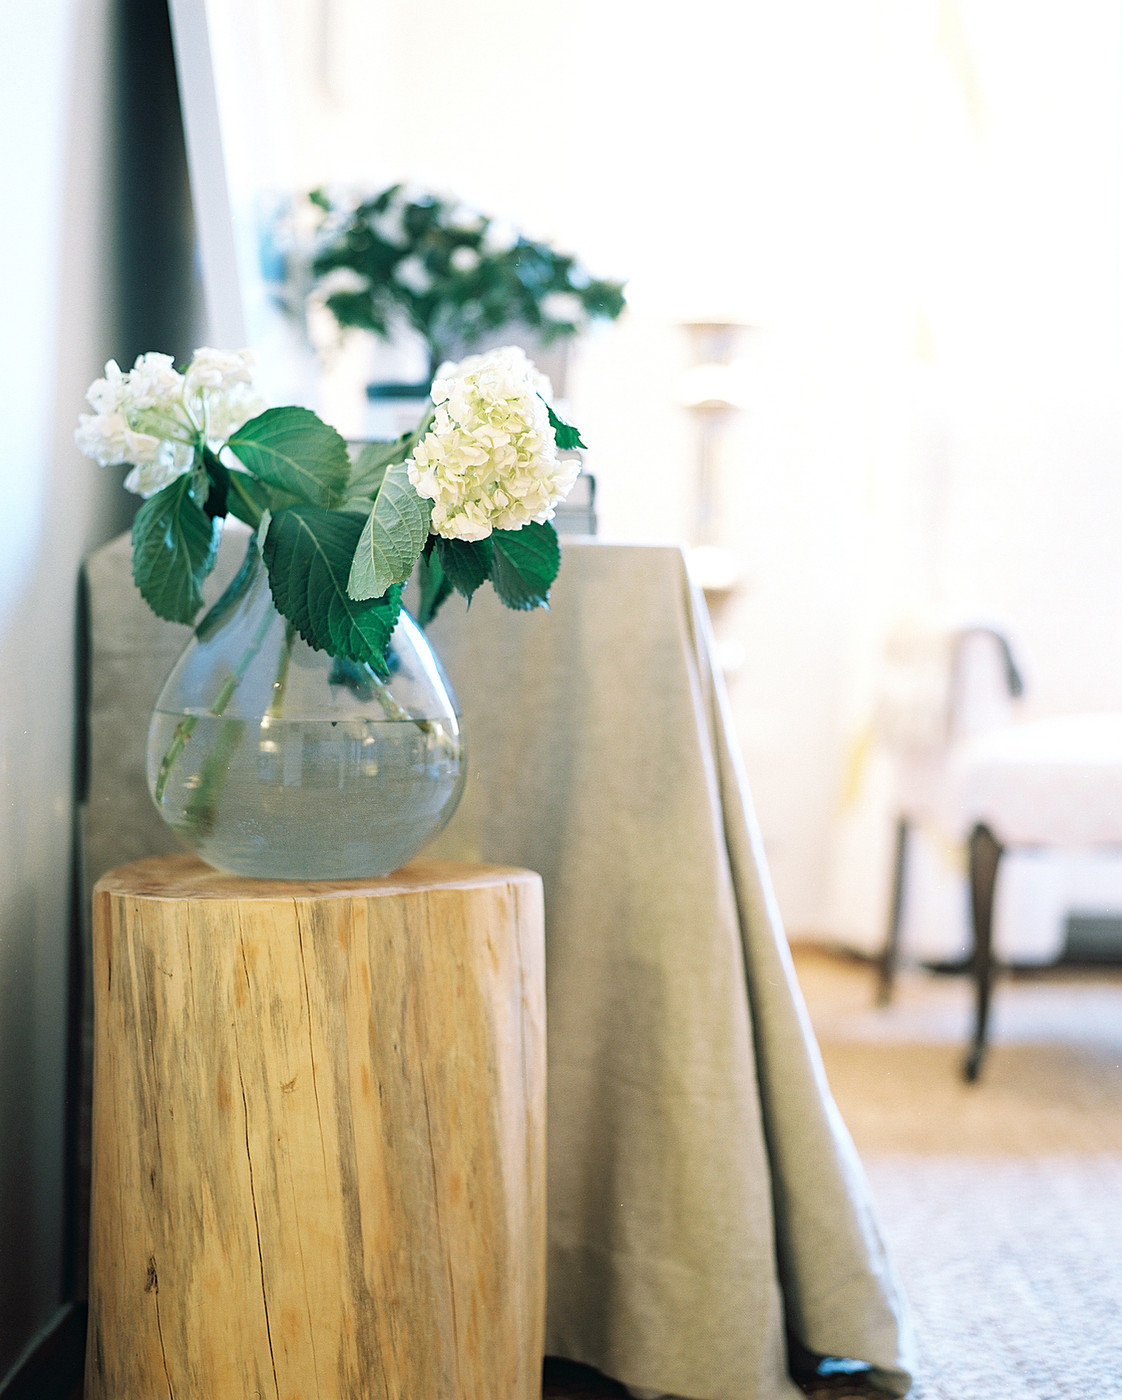 Tree trunk table photos design ideas remodel and decor - Tree trunk table decorations ...